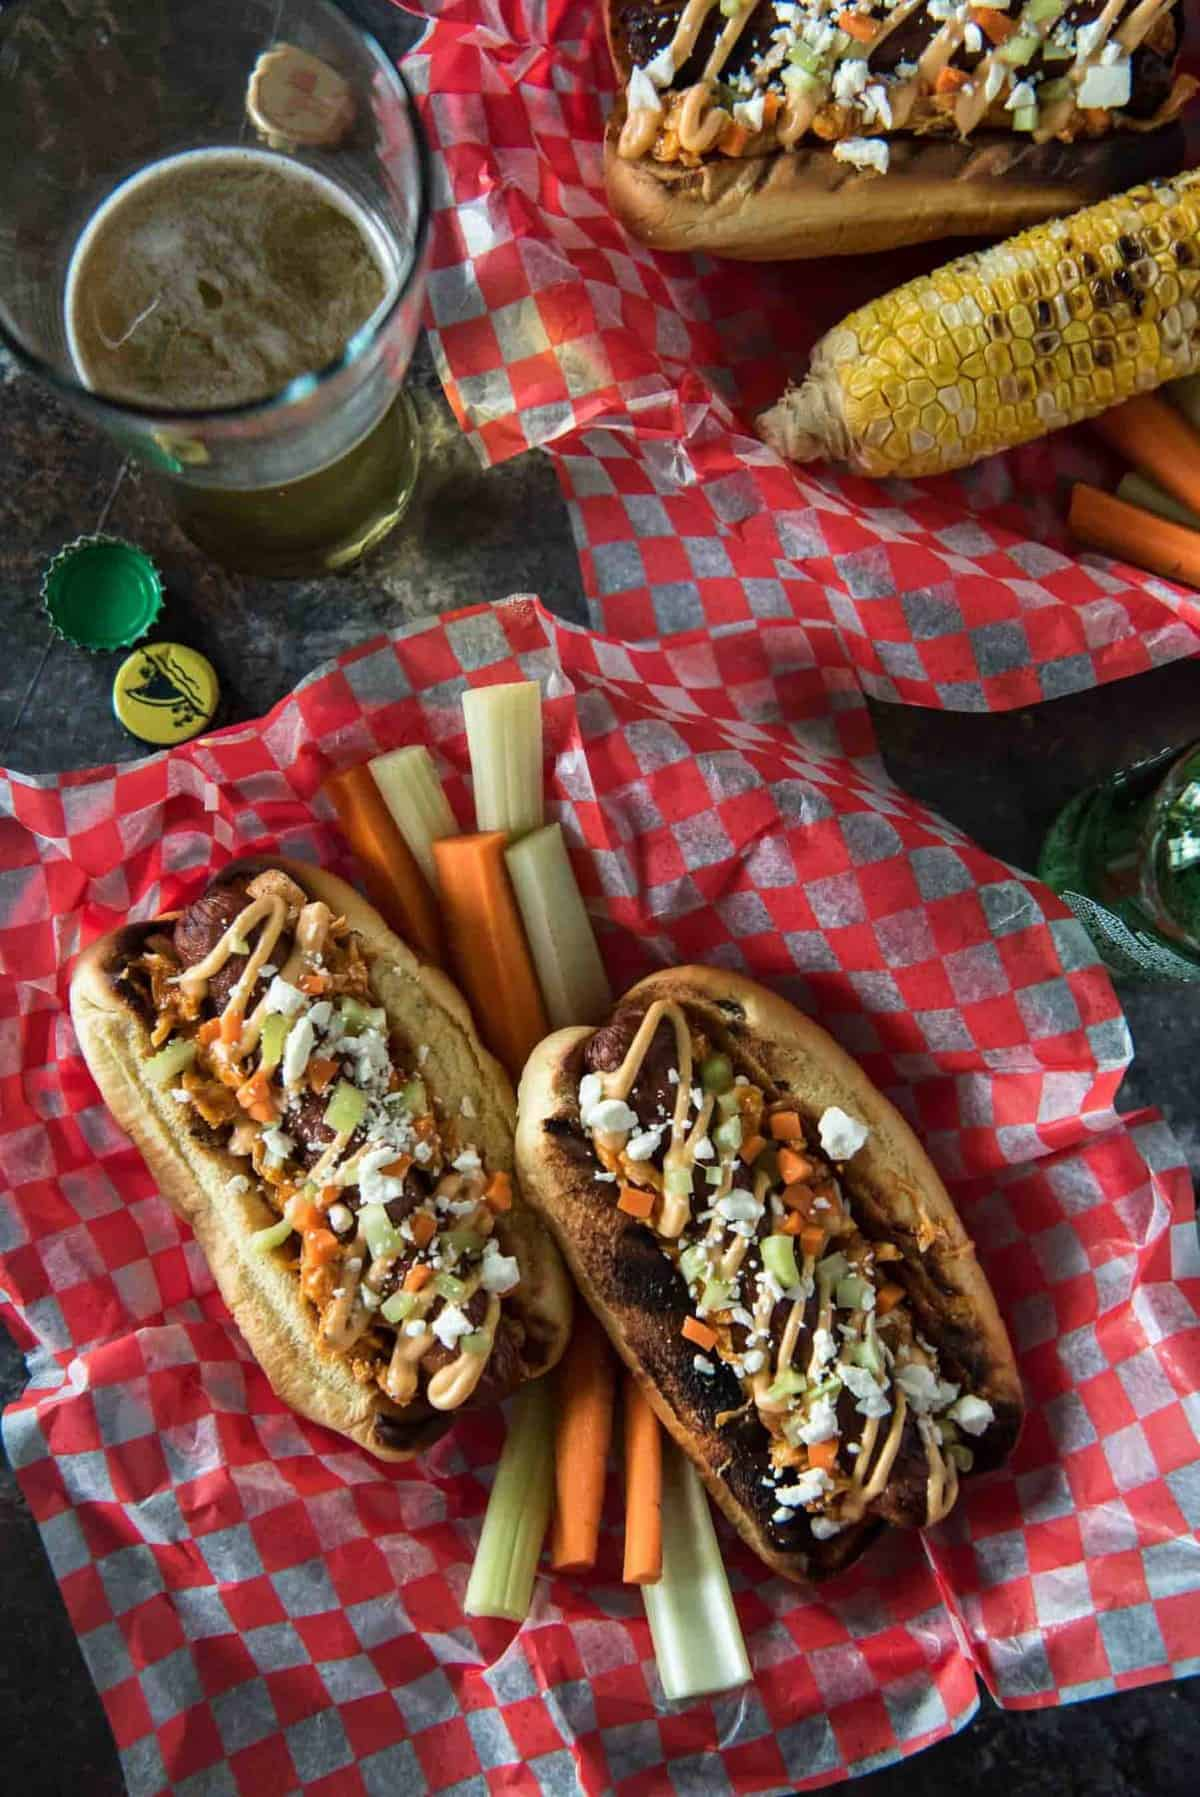 Summer grilling with a kick! Top your Buffalo Hot Dogs with shredded Buffalo chicken, zesty Buffalo mayo, chopped celery & carrots, and blue cheese (or Feta for BCHaters) for a change of pace in your hum-drum dog game!